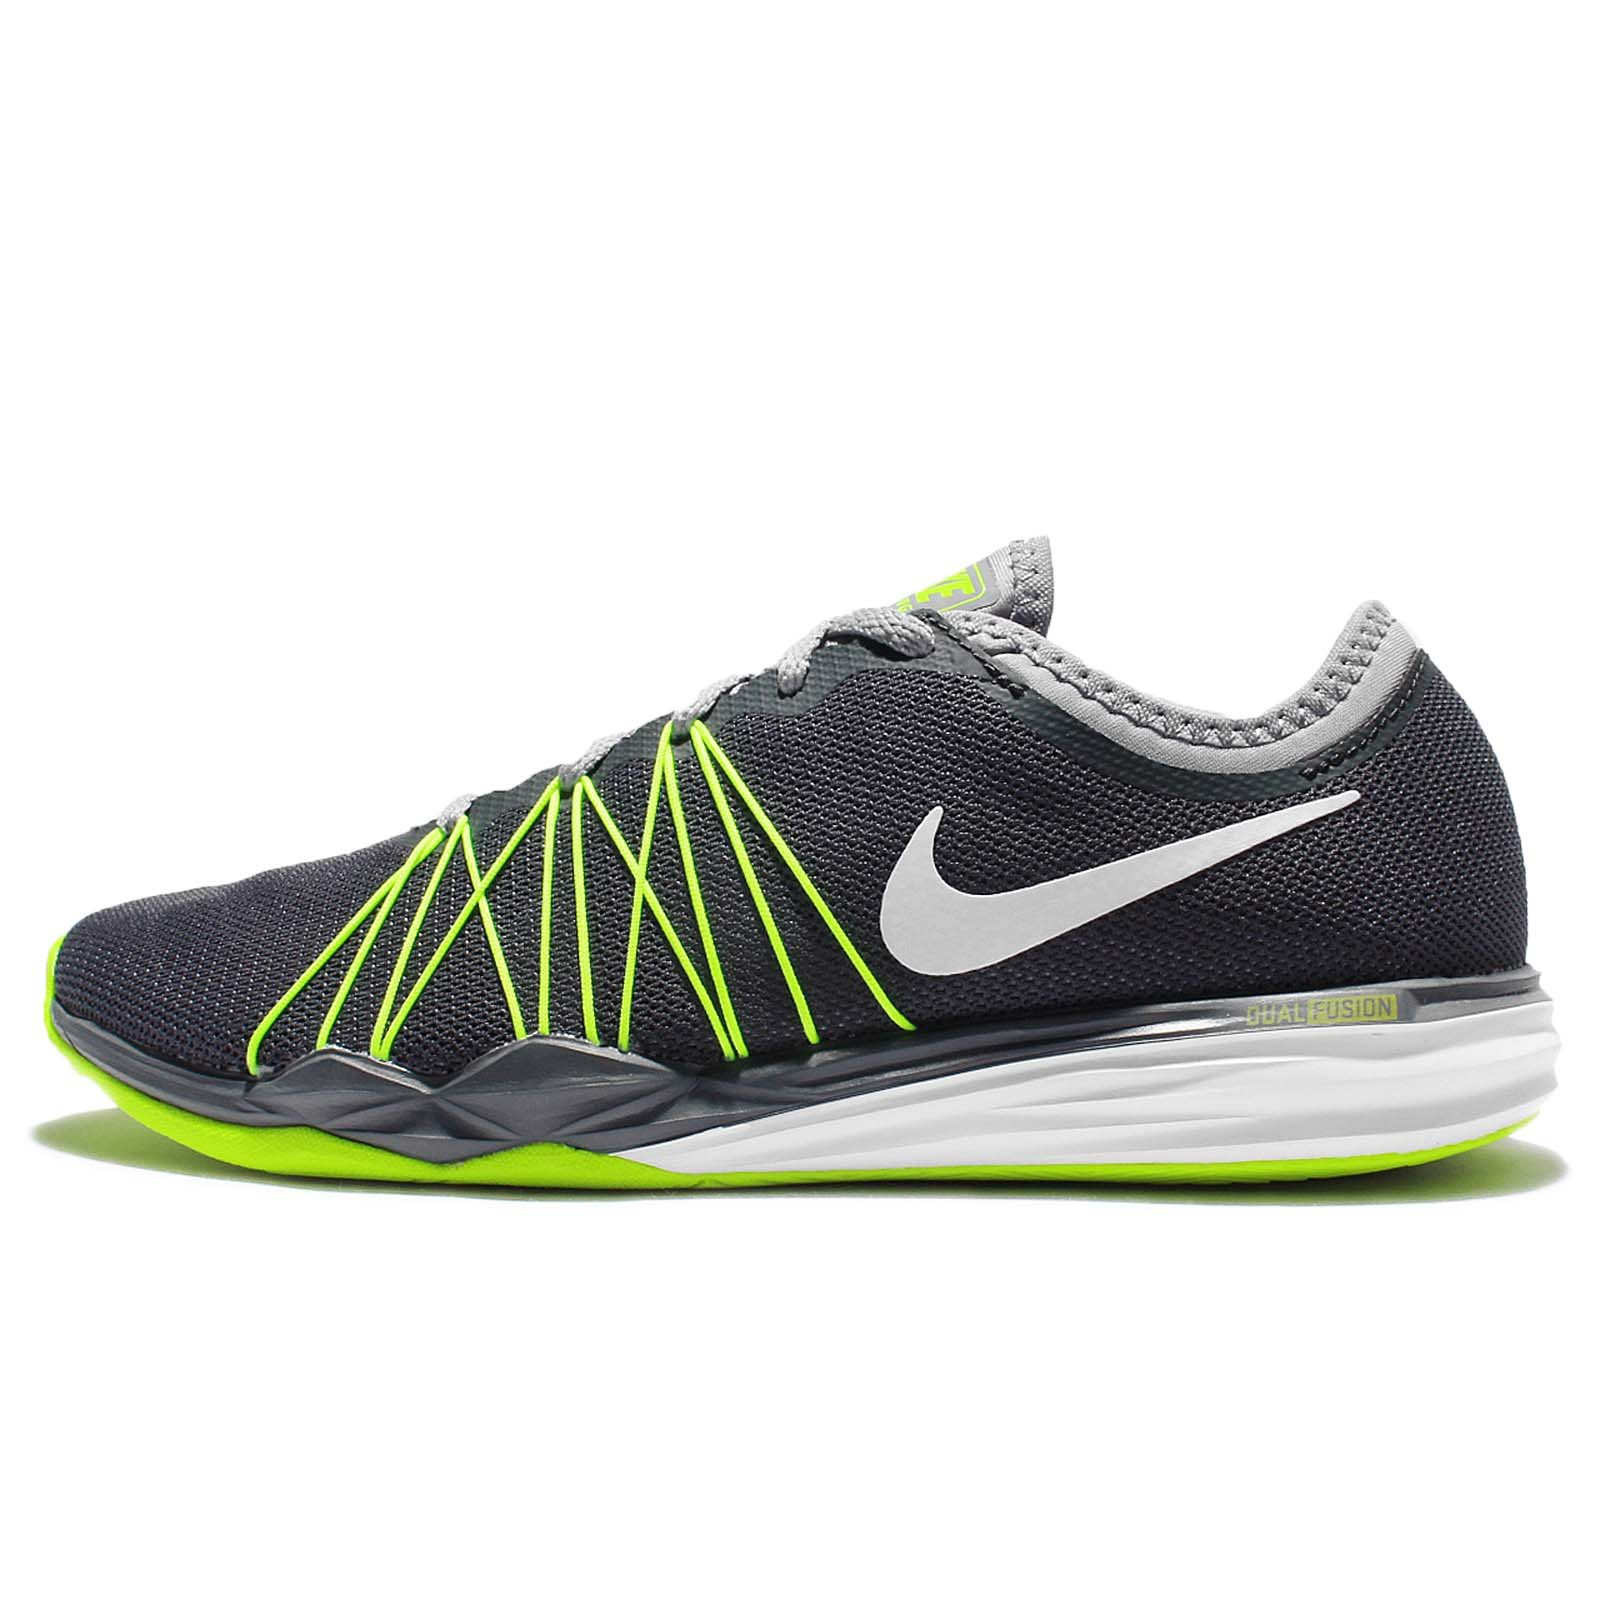 NIKE Womens Dual Fusion TR Hit Fabric Low Top Lace Up Running, Grey, Size 7.5